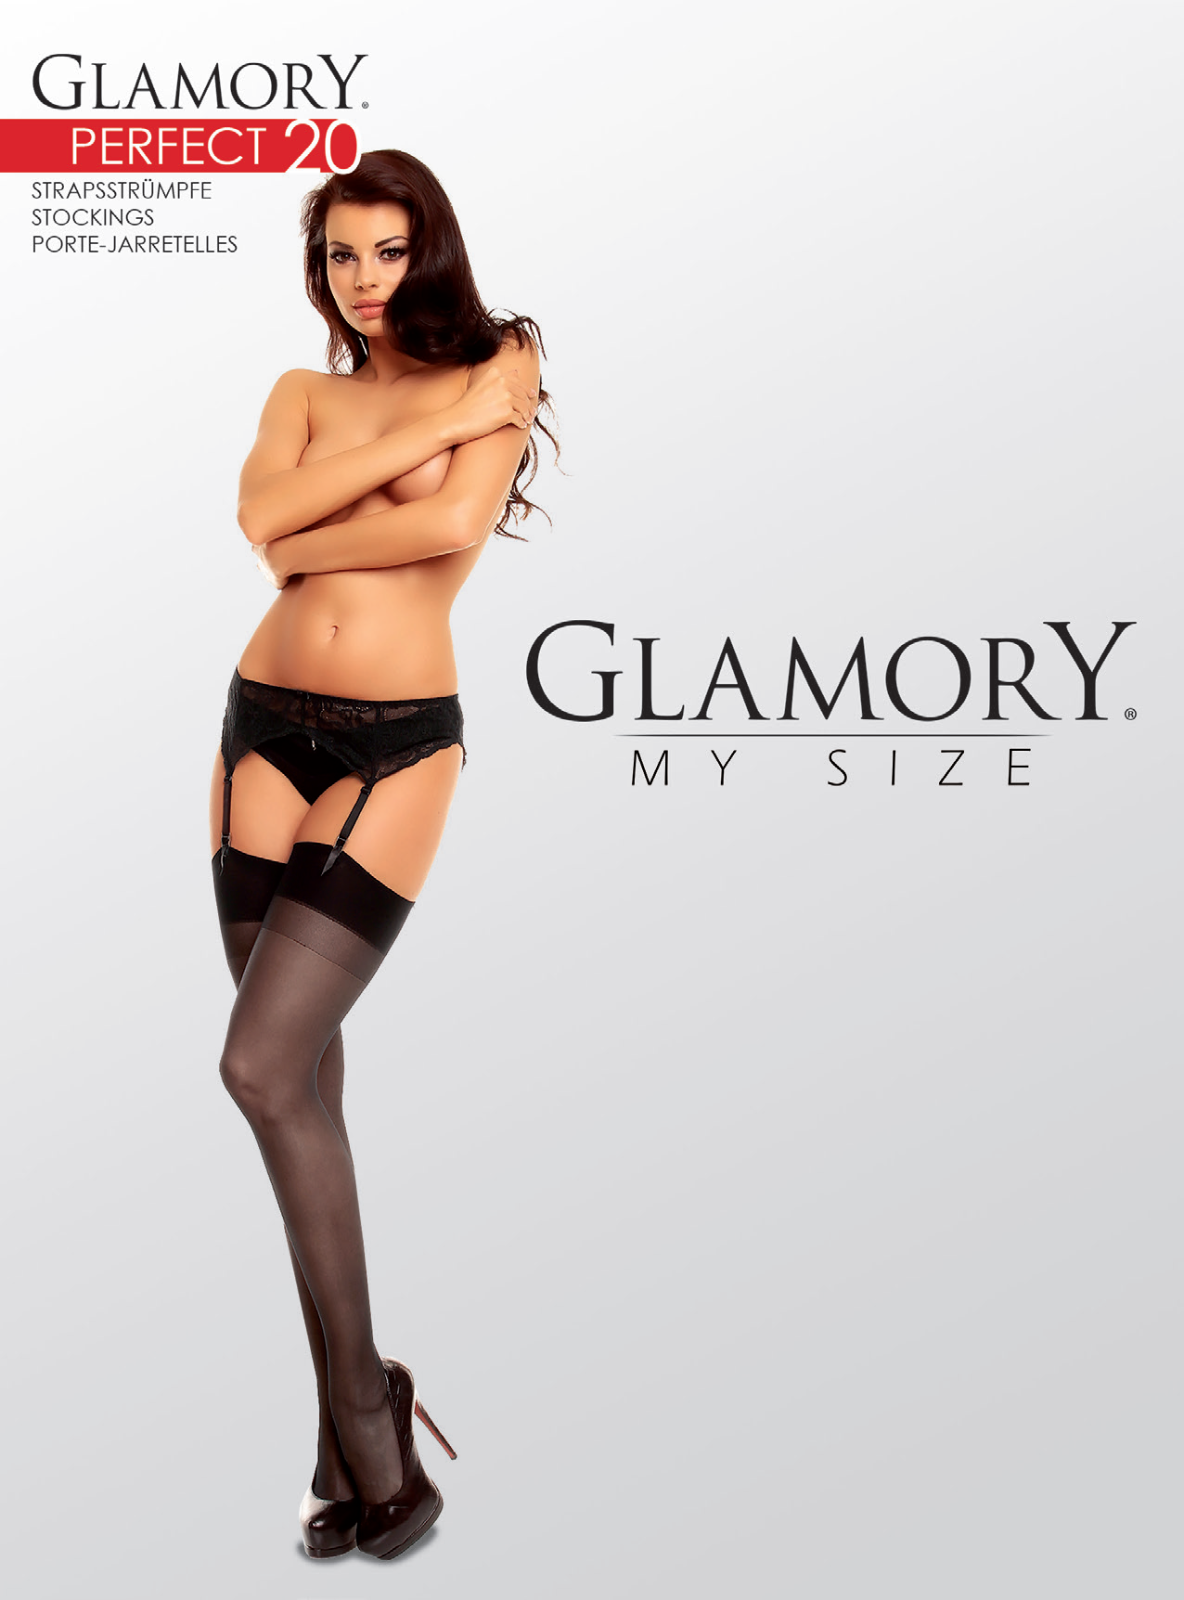 glamory perfect 20 stockings style 50131 black sizes large to 4xl 20 denier